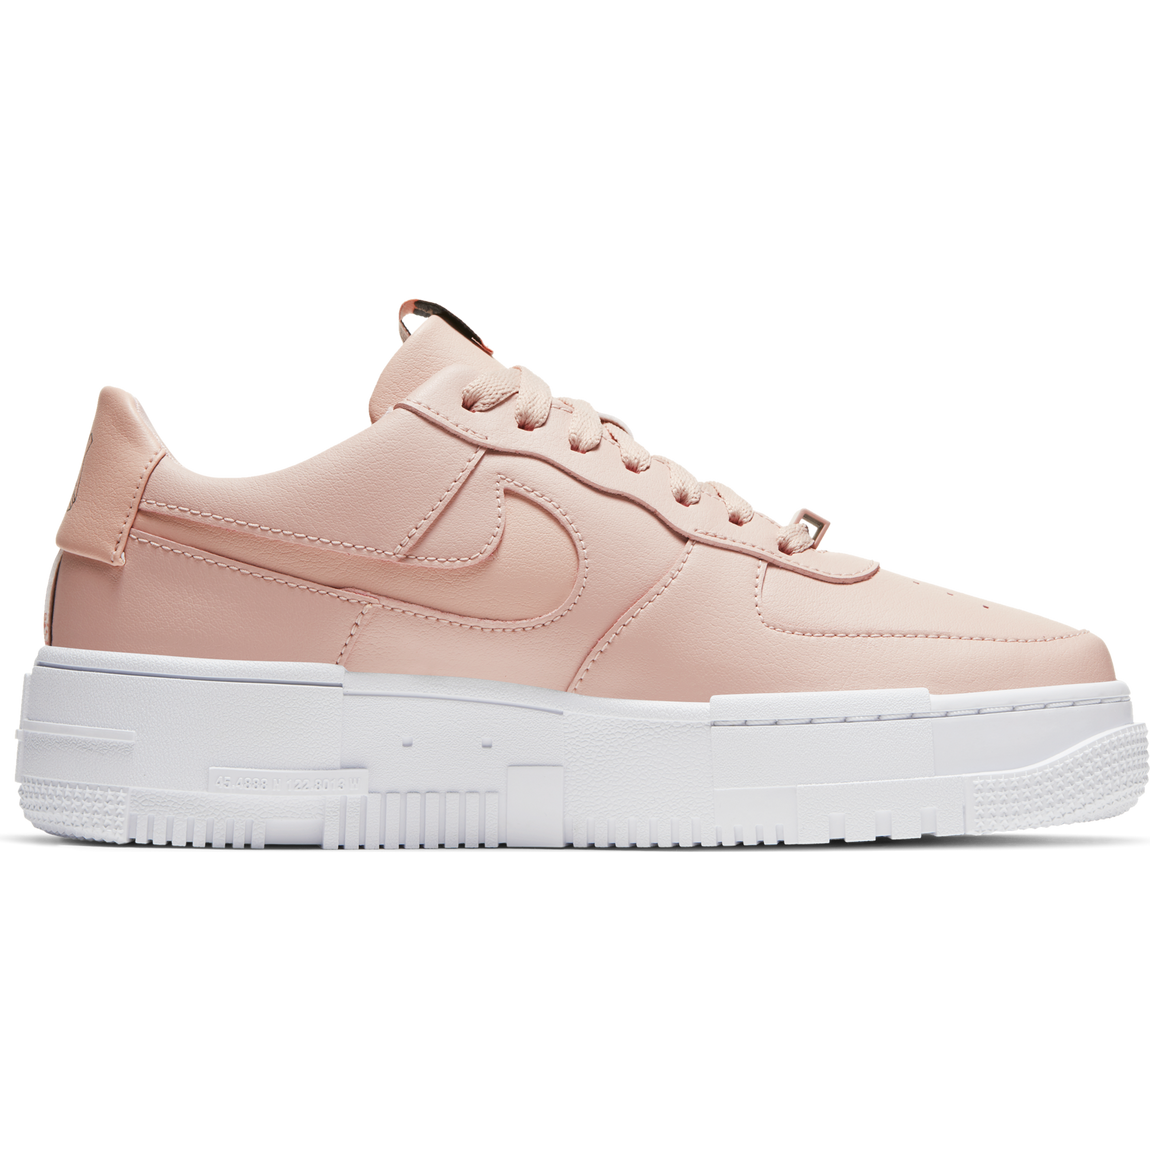 Nike Women's Air Force 1 Pixel (Particle Beige/Particle Beige) - Nike Women's Air Force 1 Pixel (Particle Beige/Particle Beige) -